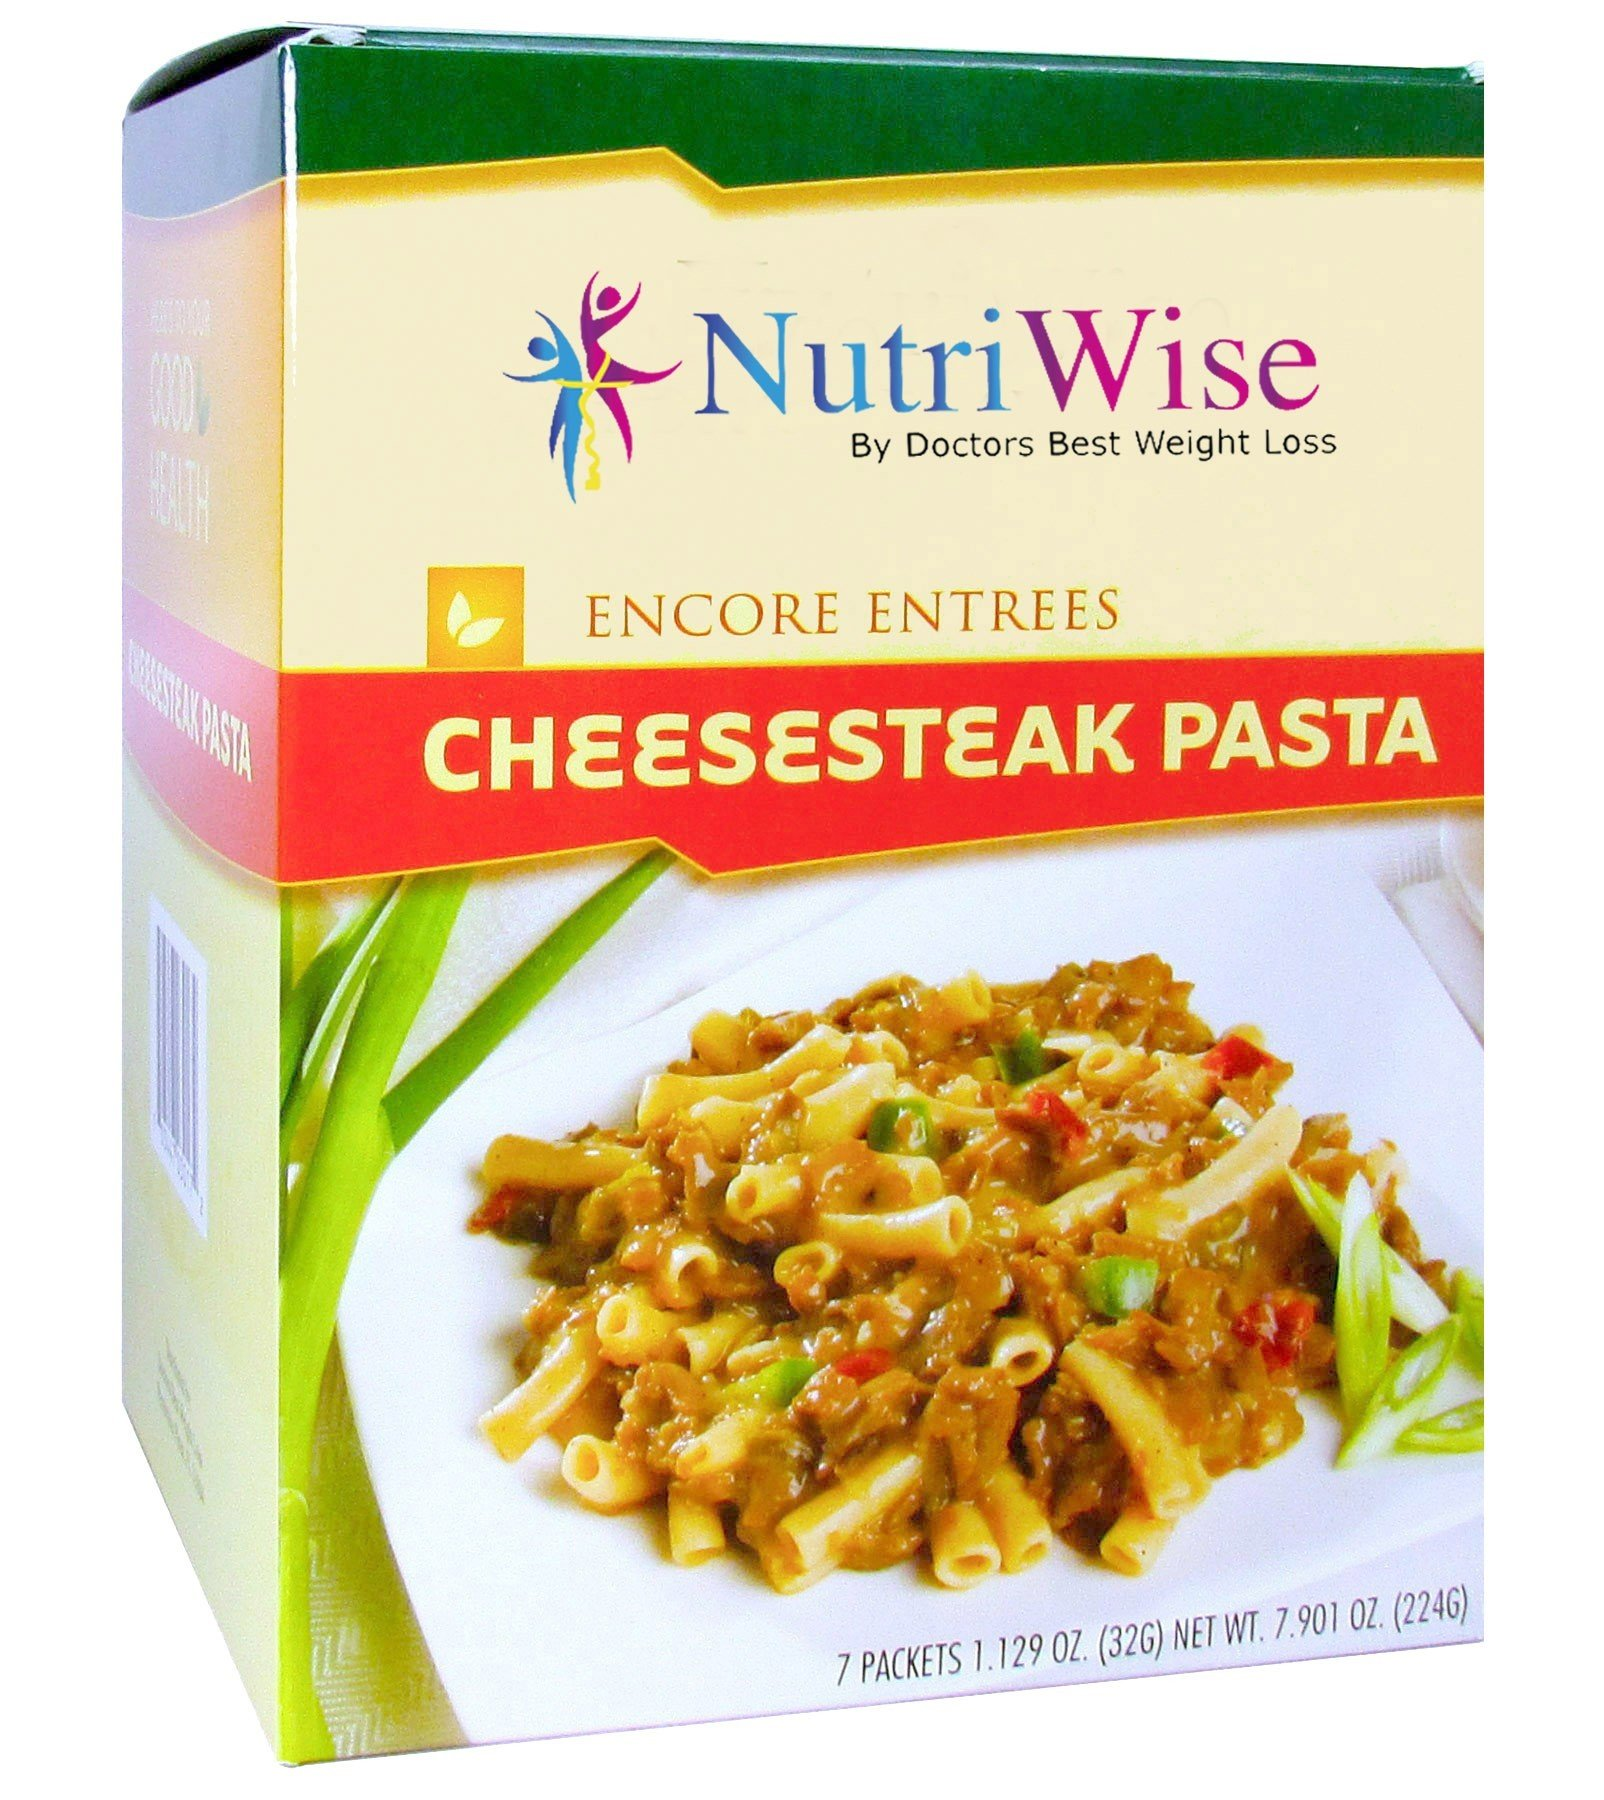 Nutriwise - Cheesesteak Pasta Diet Entree (7/Box) by NutriWise - By Doctors Best Weight Loss